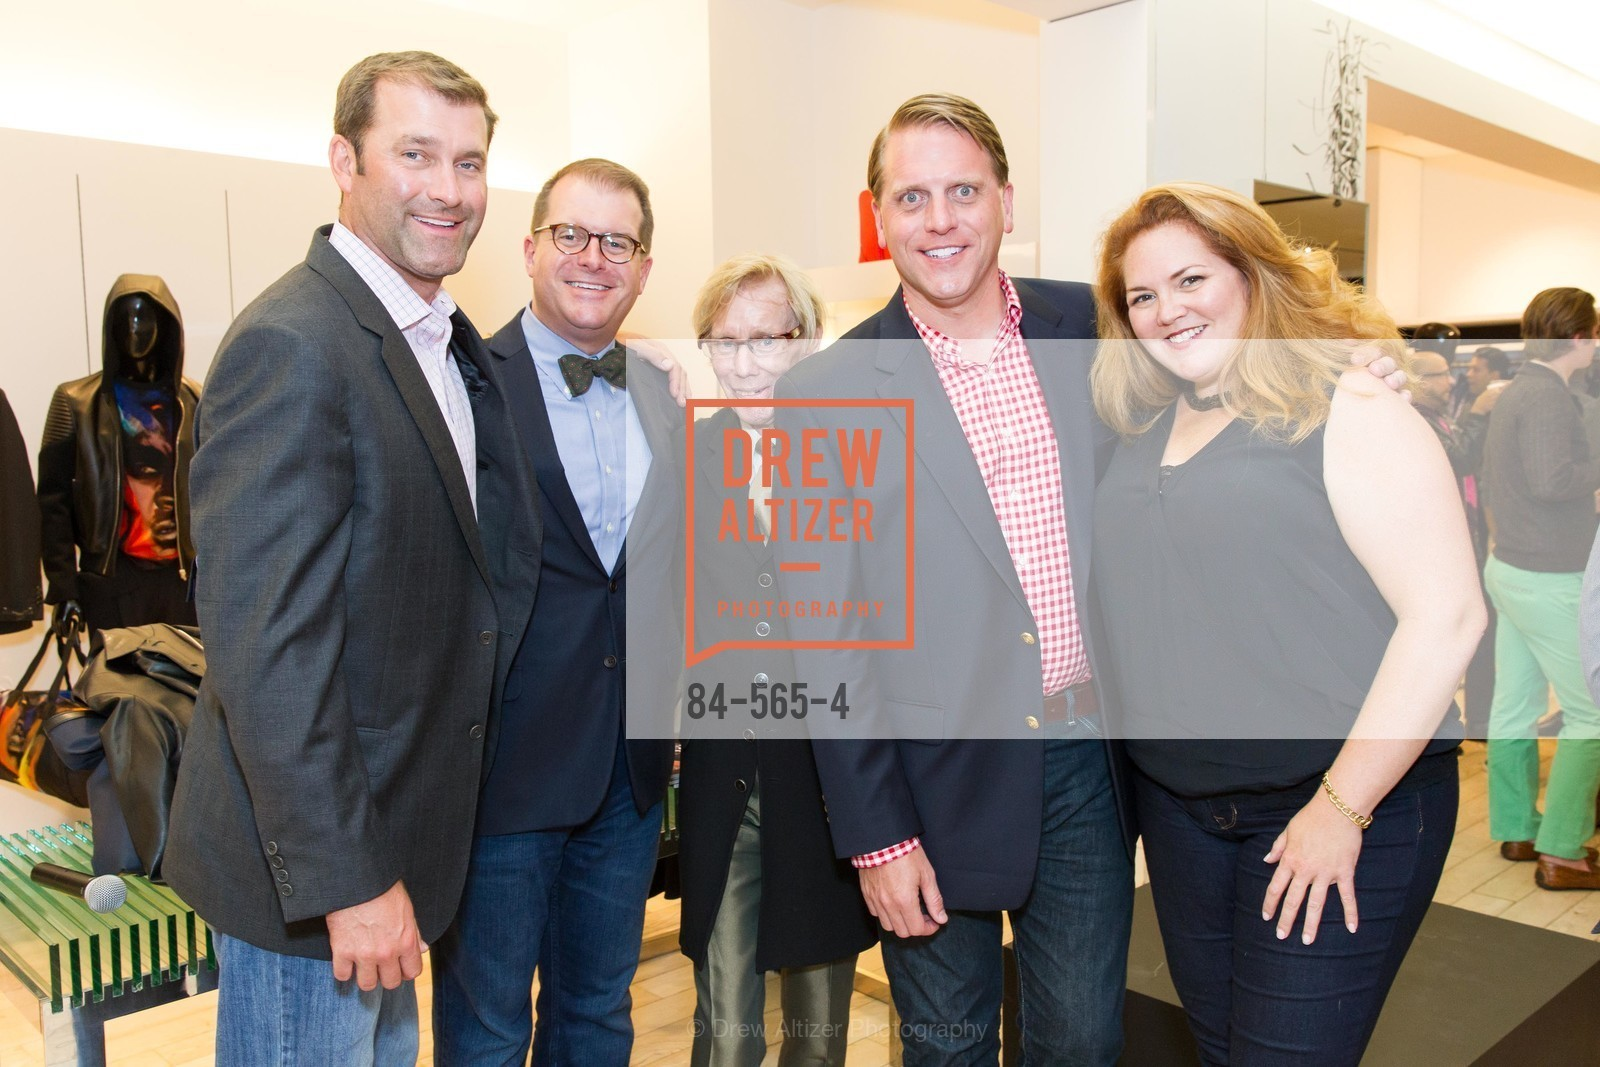 Todd Miller, Doug Piper, Gregg Solem, Scott Miller, Jennifer Hooker, GLAAD GALA Kick-Off Party Hosted by SAKS FIFTH AVENUE, Saks Fifth Avenue. 384 Post Street, September 12th, 2014,Drew Altizer, Drew Altizer Photography, full-service agency, private events, San Francisco photographer, photographer california